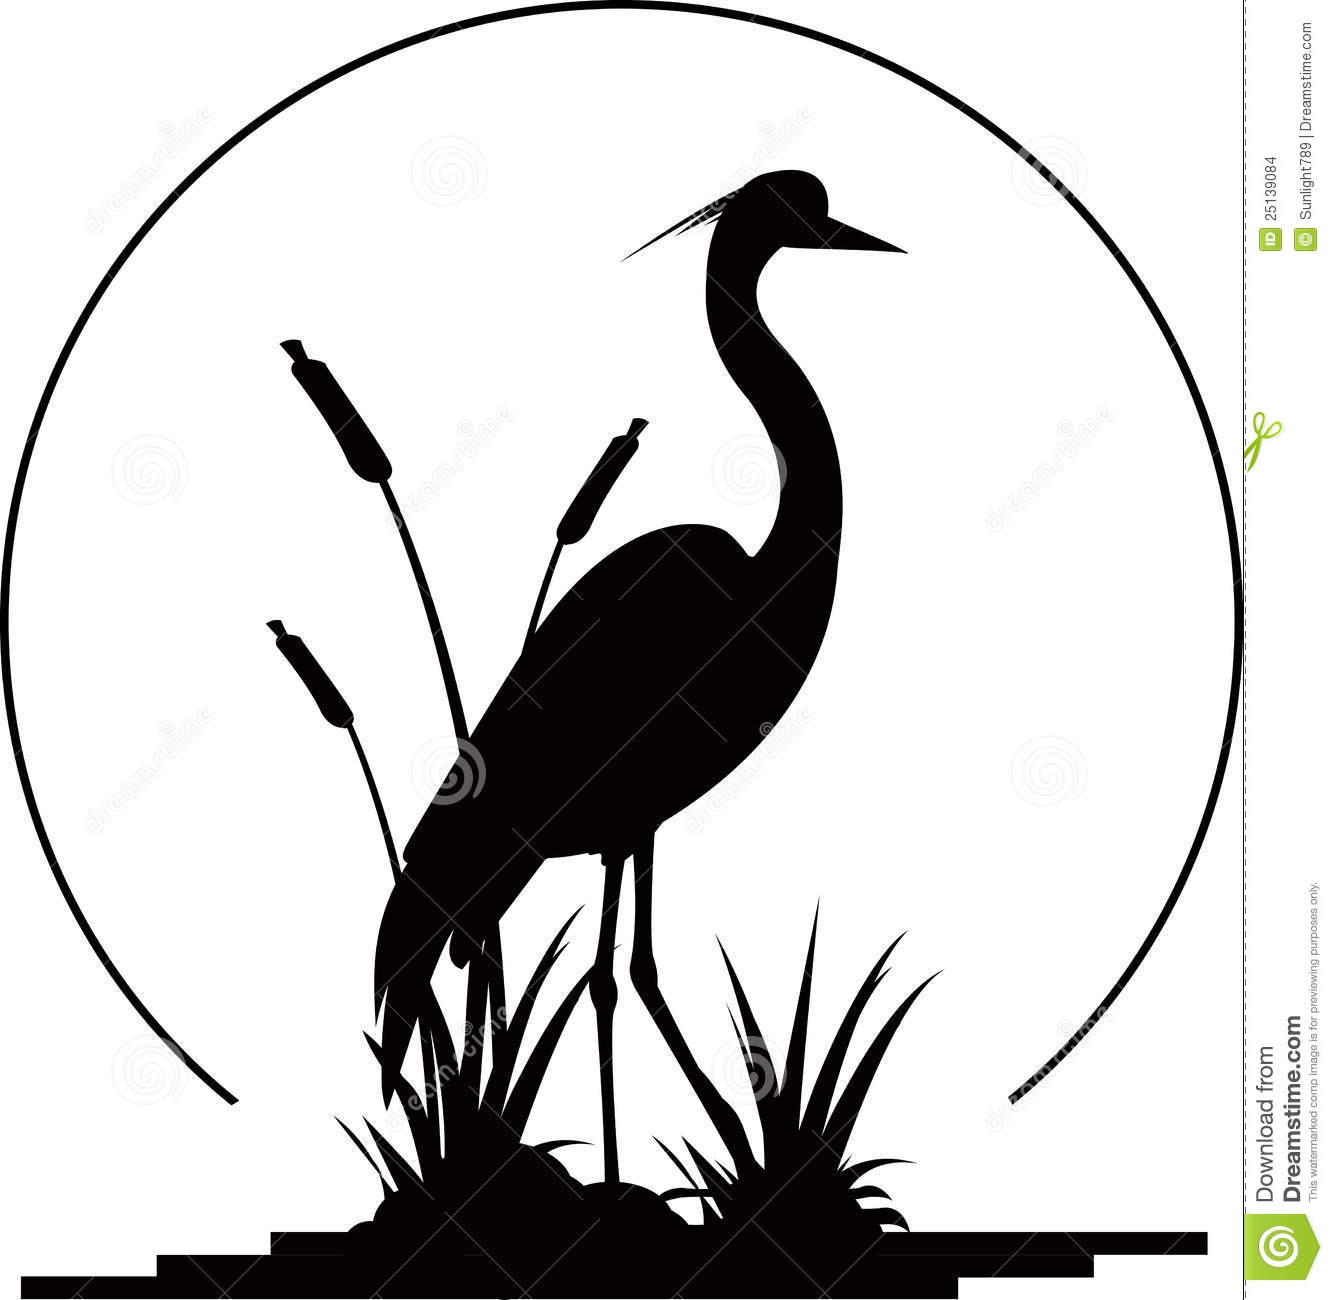 Blue Heron clipart egret Clipart For HeronMiscellaneous Graphic Images